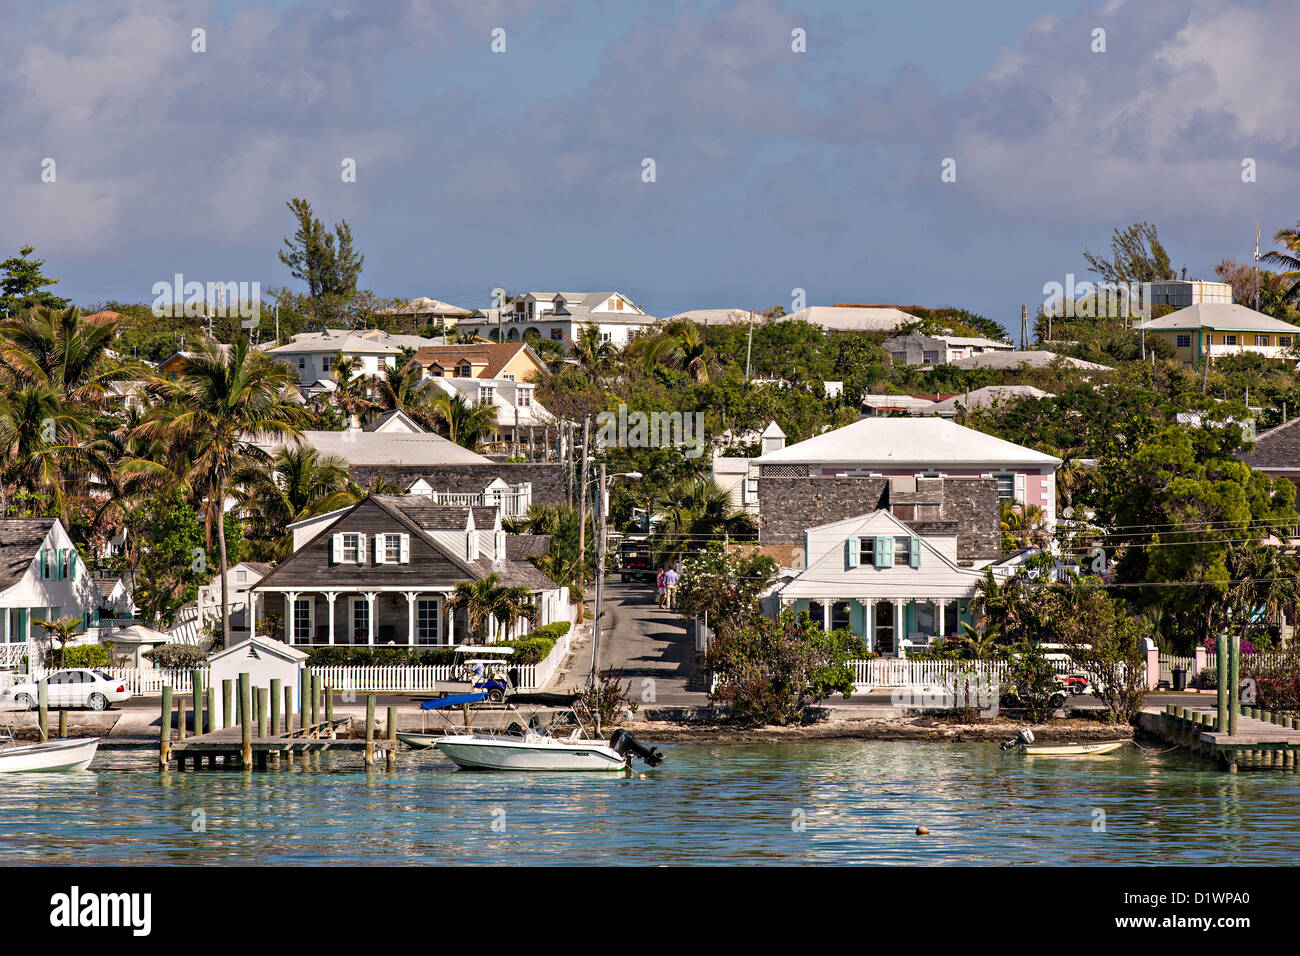 Dunmore Town Harbour Island The Bahamas Stock Photo